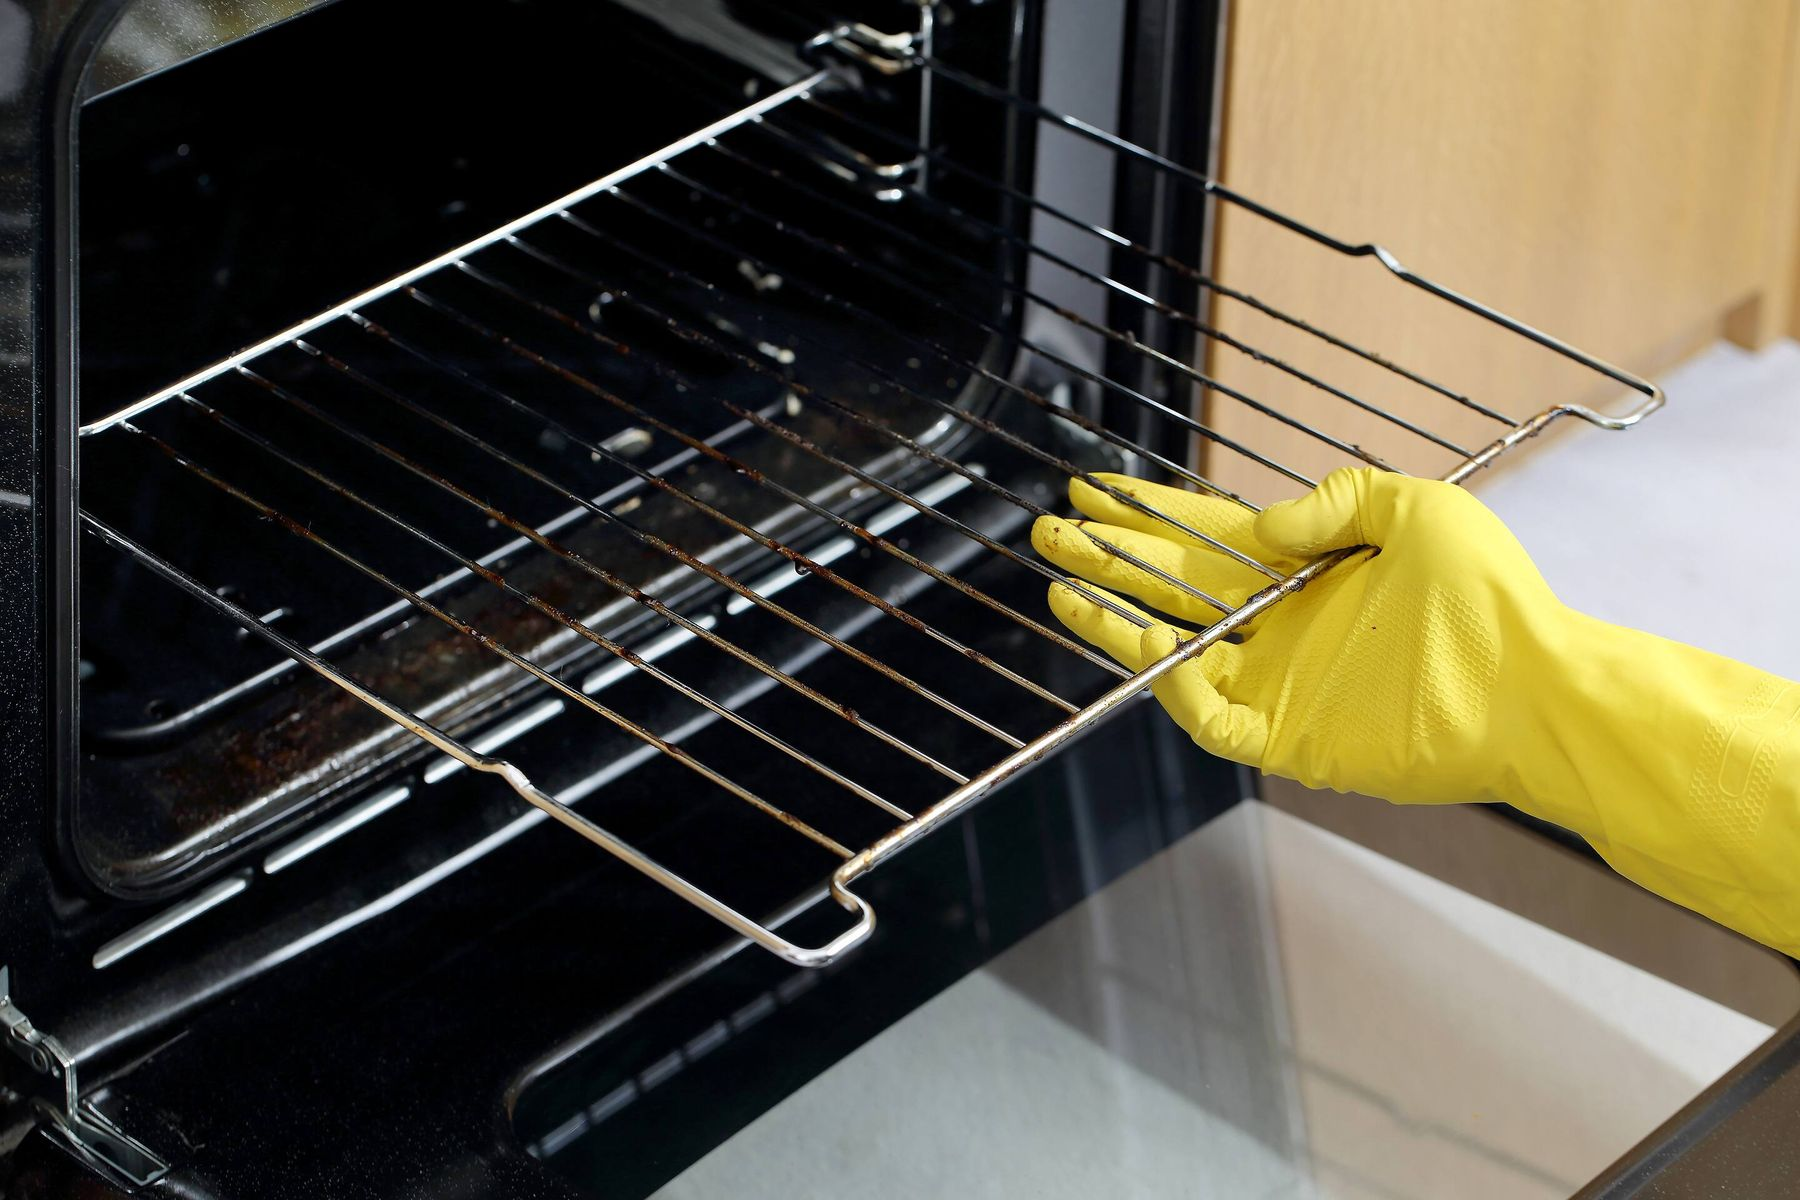 removing the shelves from oven